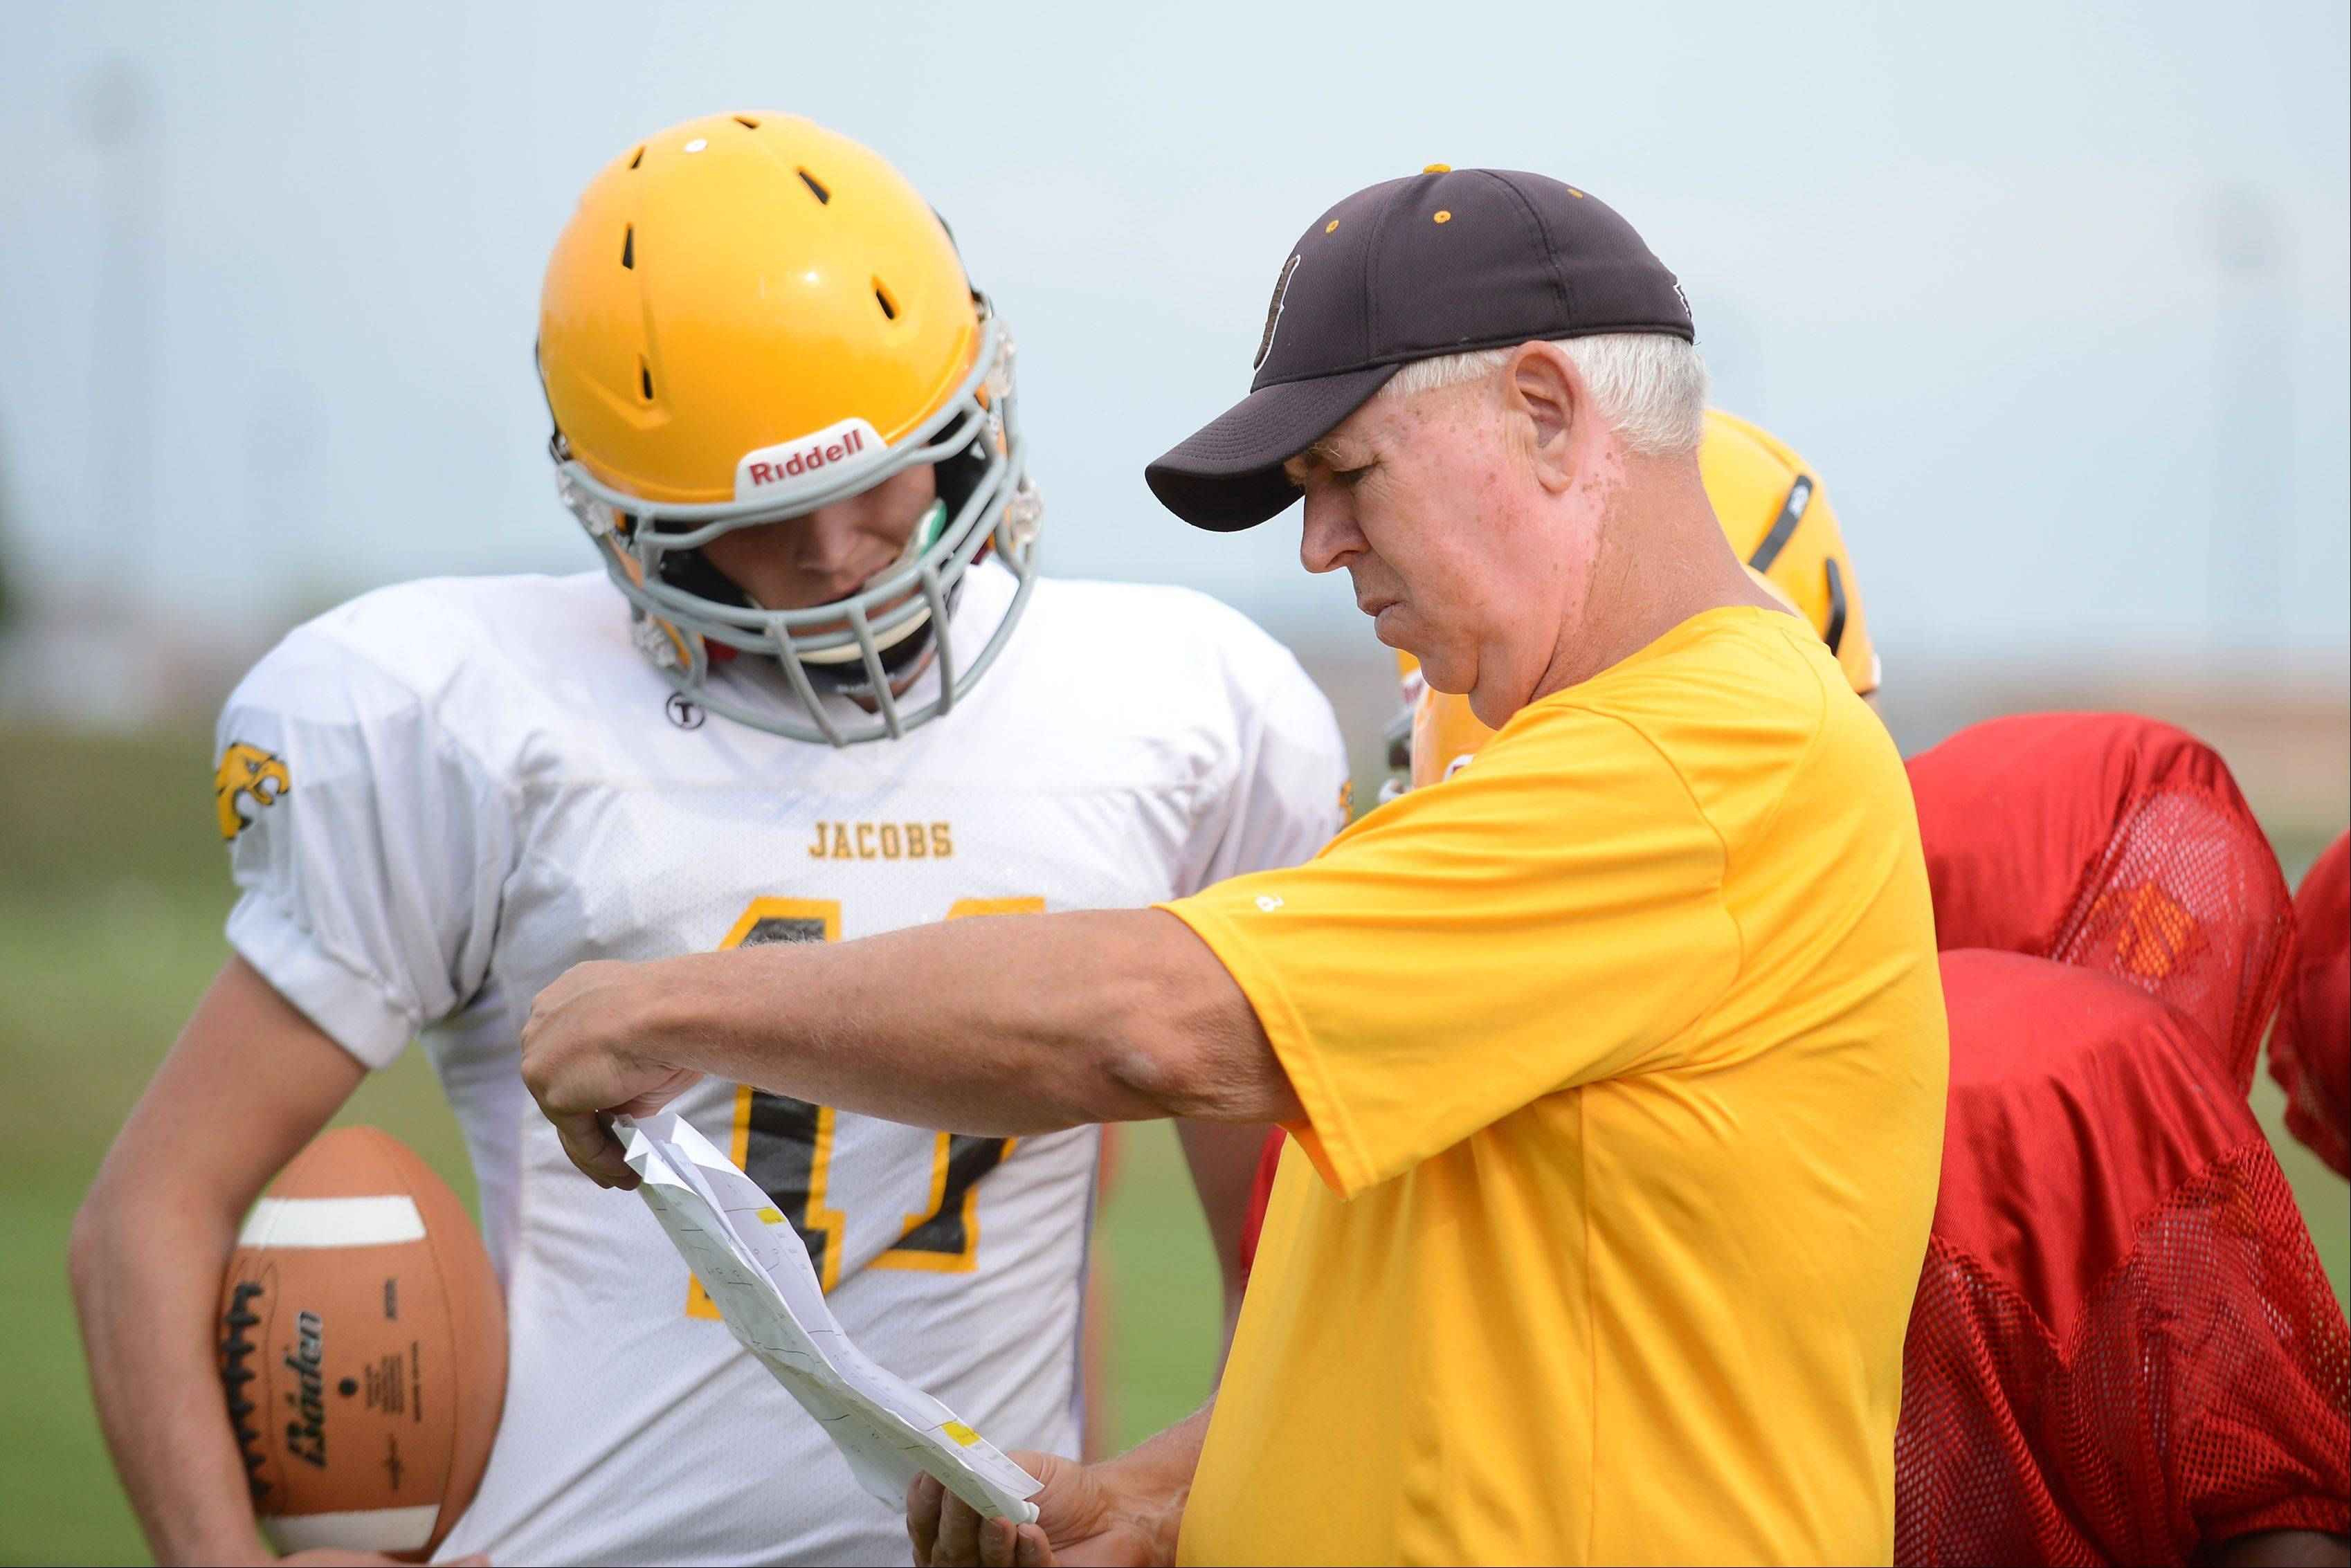 Quarterback Bret Mooney and coach Bill Mitz go over a play during Jacobs High School football practice in Algonquin.